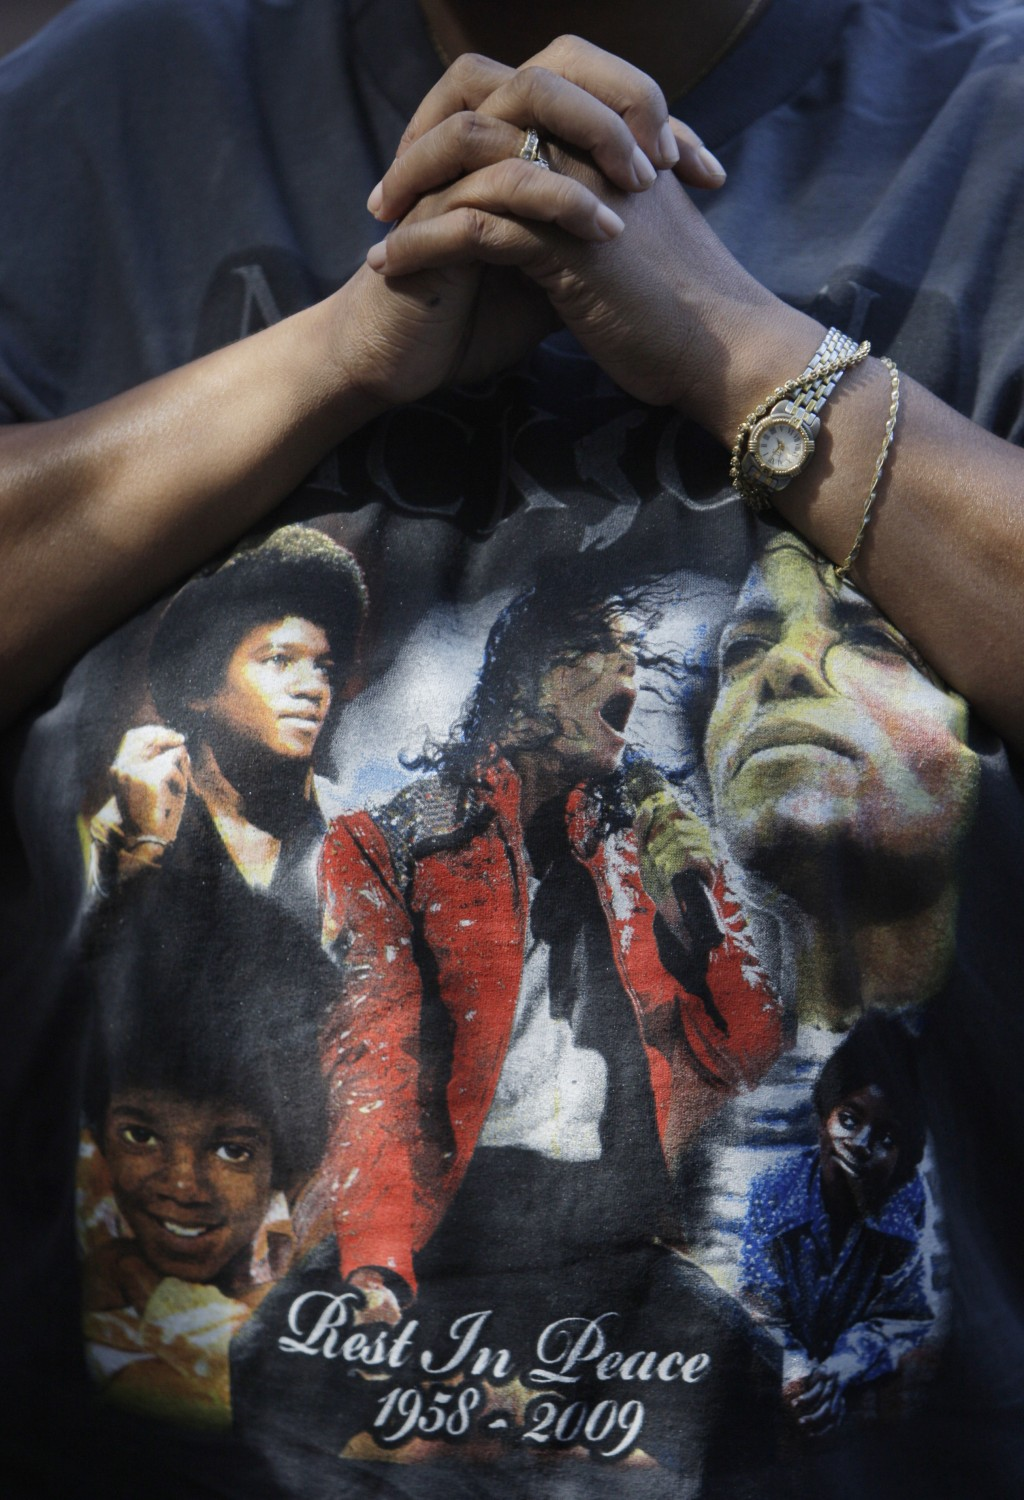 FILE - This June 30, 2009 file photo shows a fan wearing a Michael Jackson T-shirt at a makeshift memorial for the late pop star outside the Jackson f...